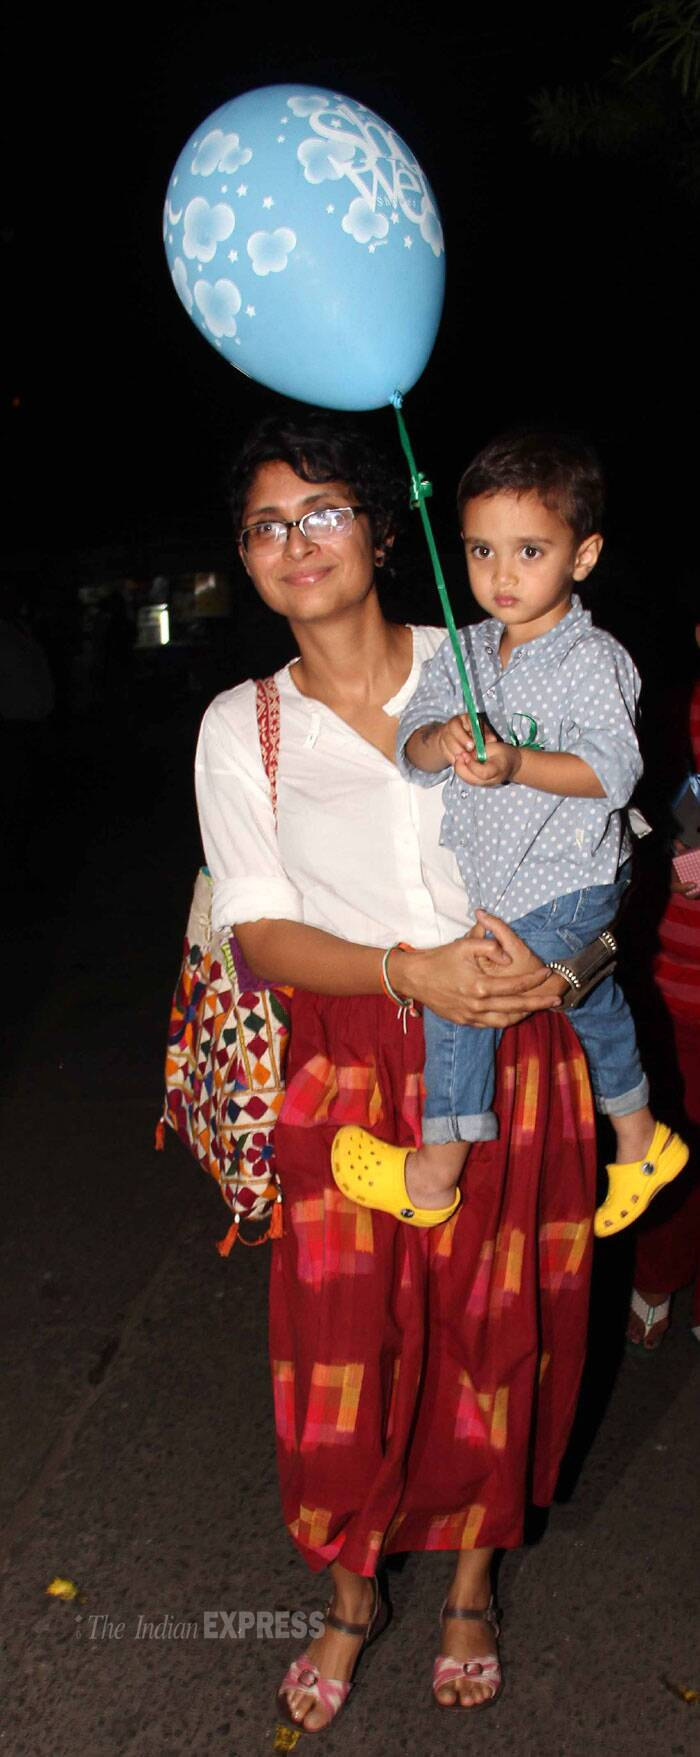 Aamir Khan and Kiran Rao's son Azad looked super cute in his shirt and denims as he made his way to Imran Khan and Avantika Malik's baby shower with a balloon in hand. (Photo: Varinder Chawla)